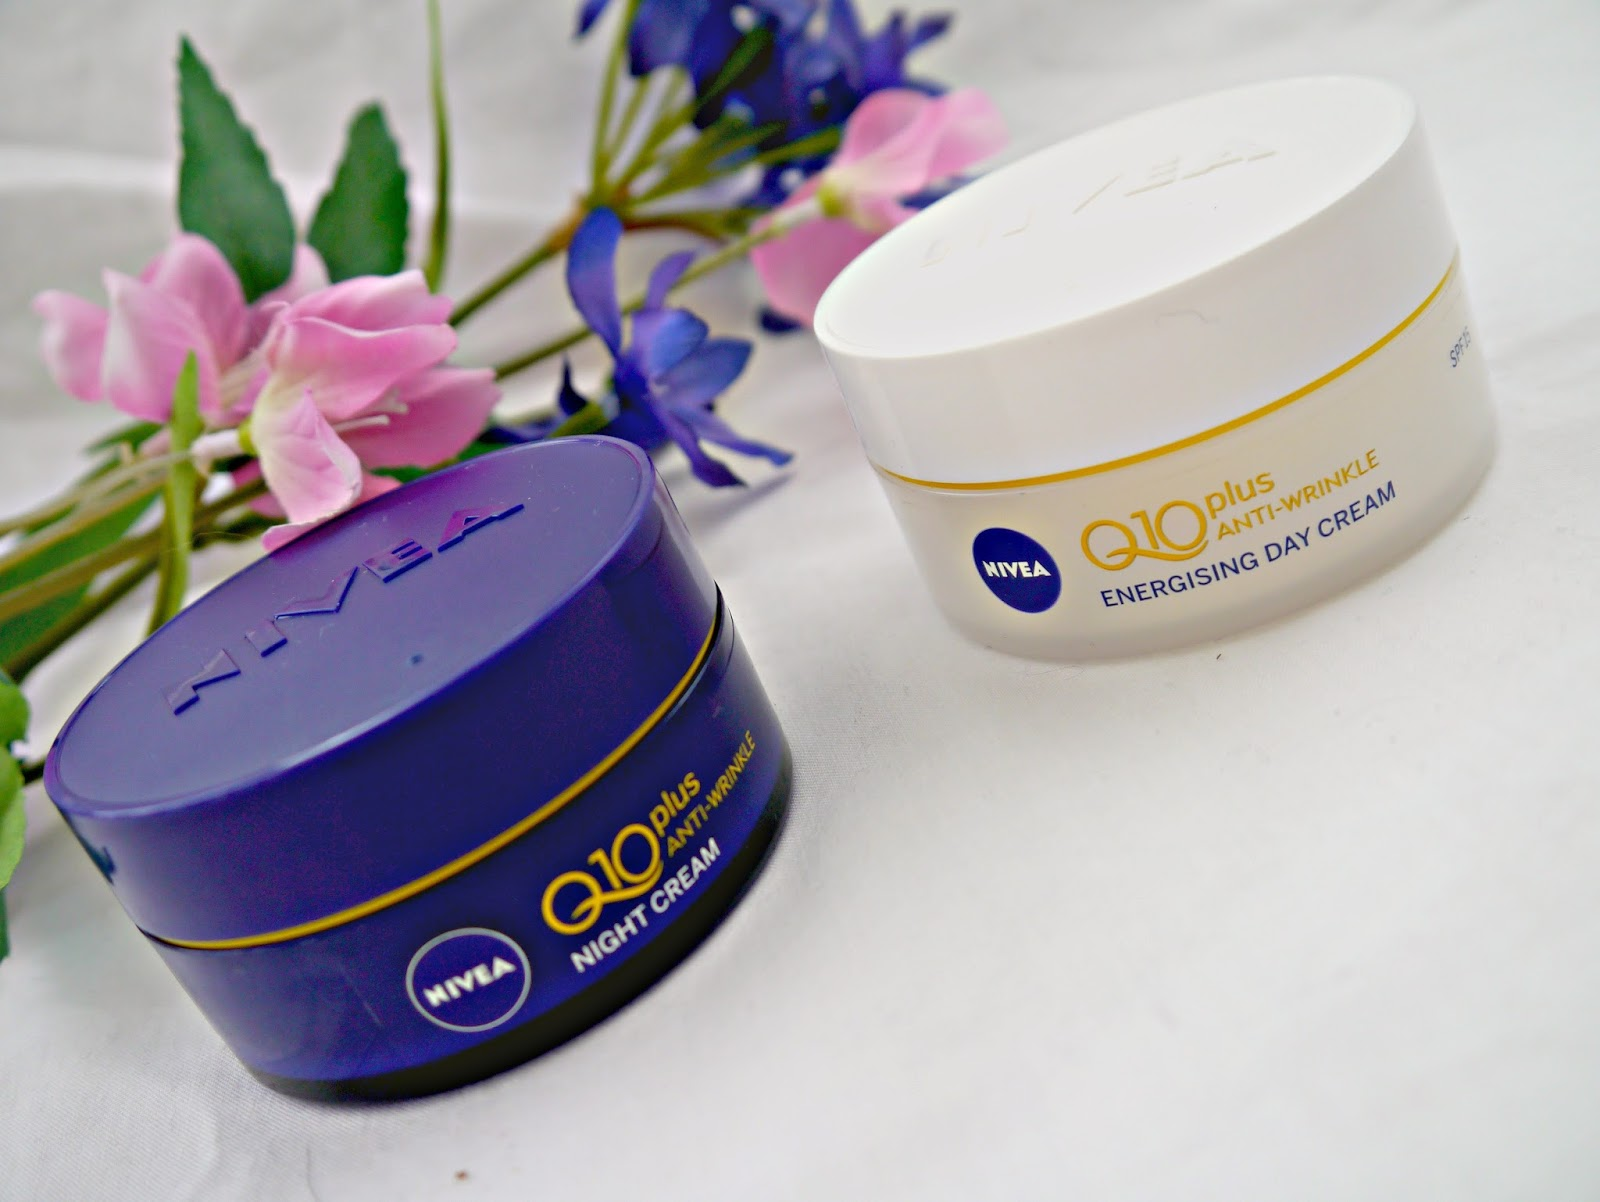 Nivea Q10 Plus Anti - Wrinkle Skincare